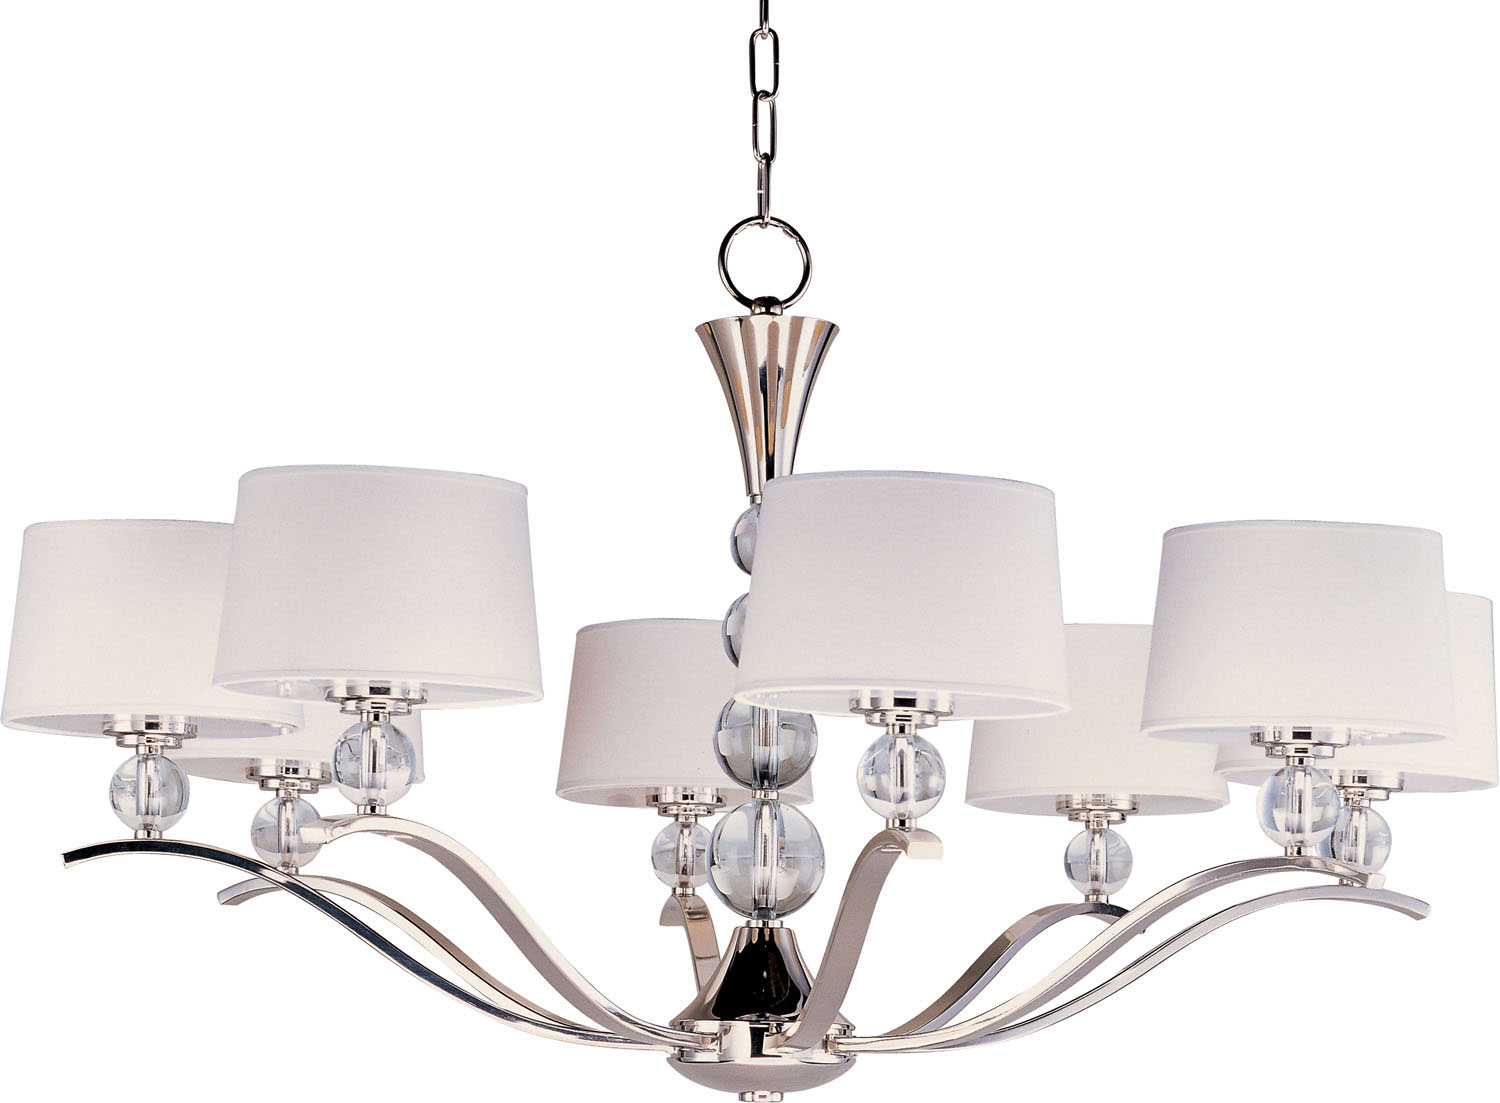 Eight Light Chandelier from the Rondo collection by Maxim 12758WTPN